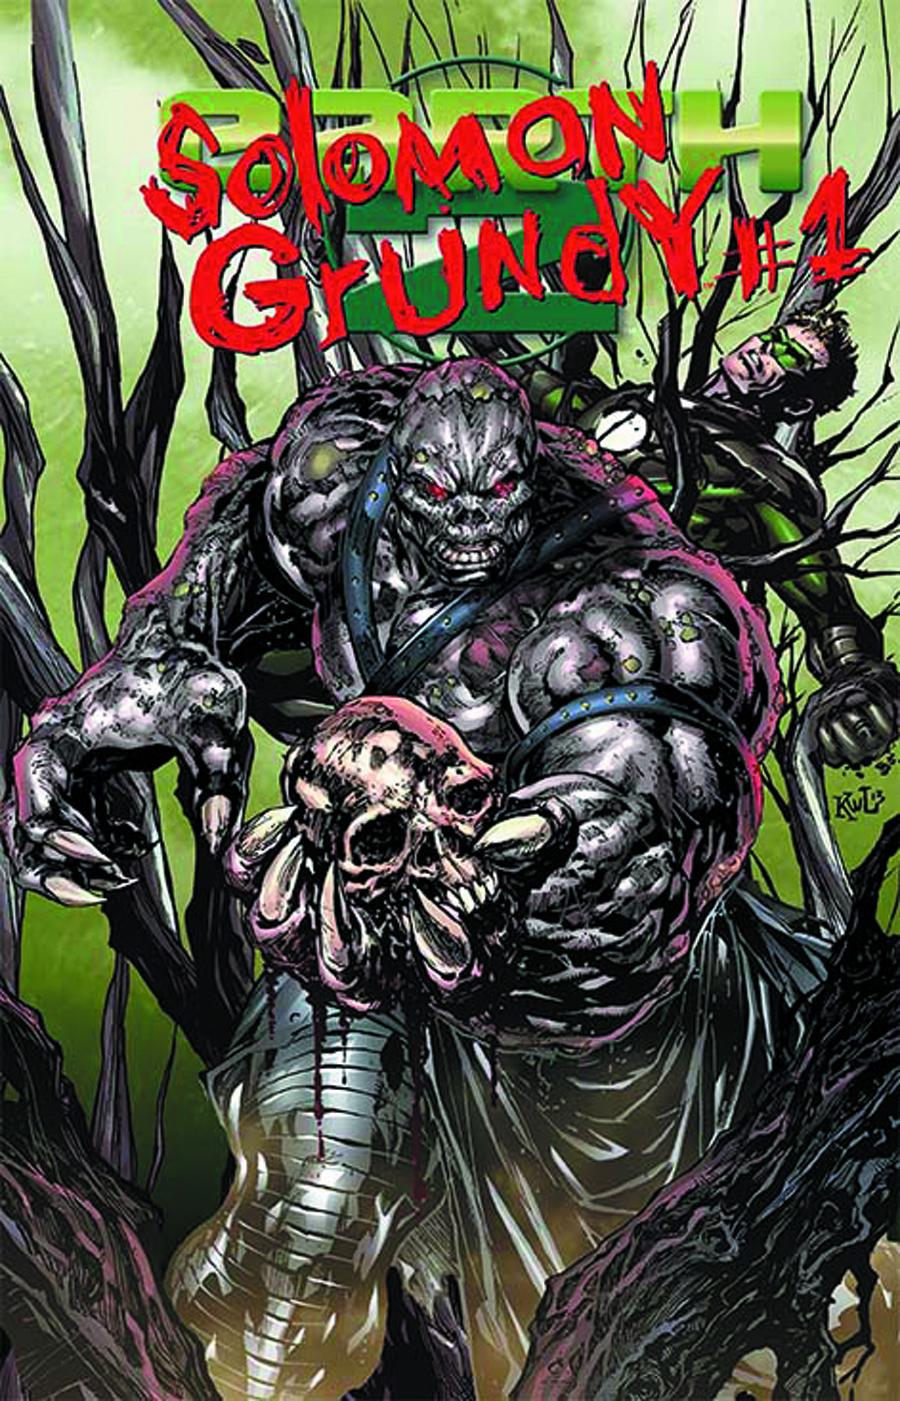 EARTH 2 #15.2 SOLOMON GRUNDY STANDARD ED